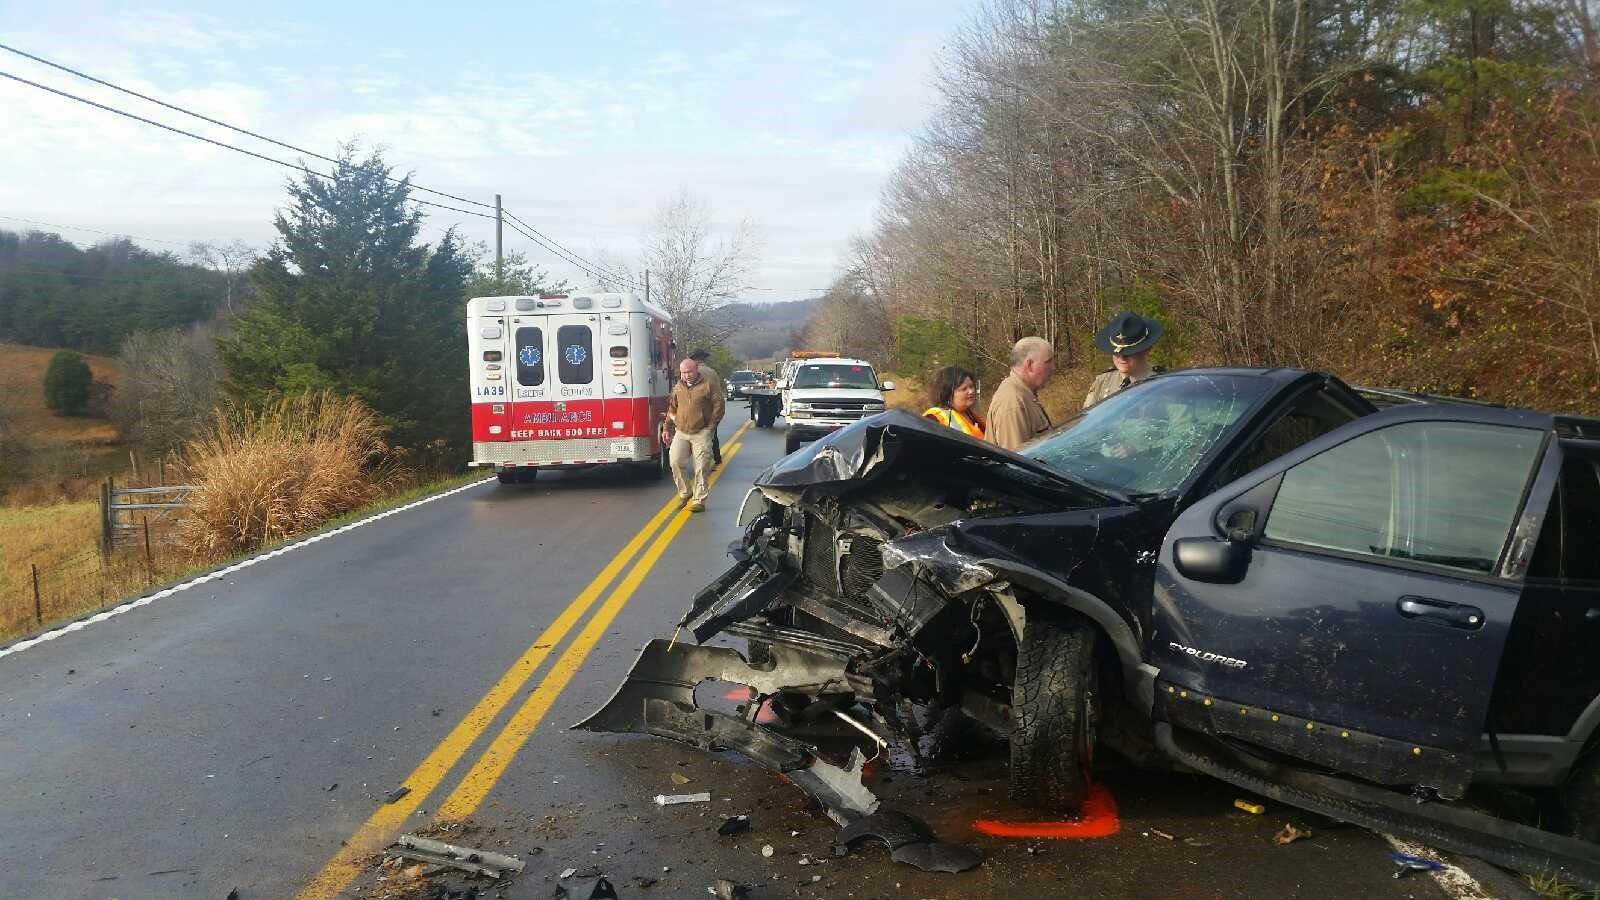 laurel county fatal crash victim identified lex18com continuous news and stormtracker weather